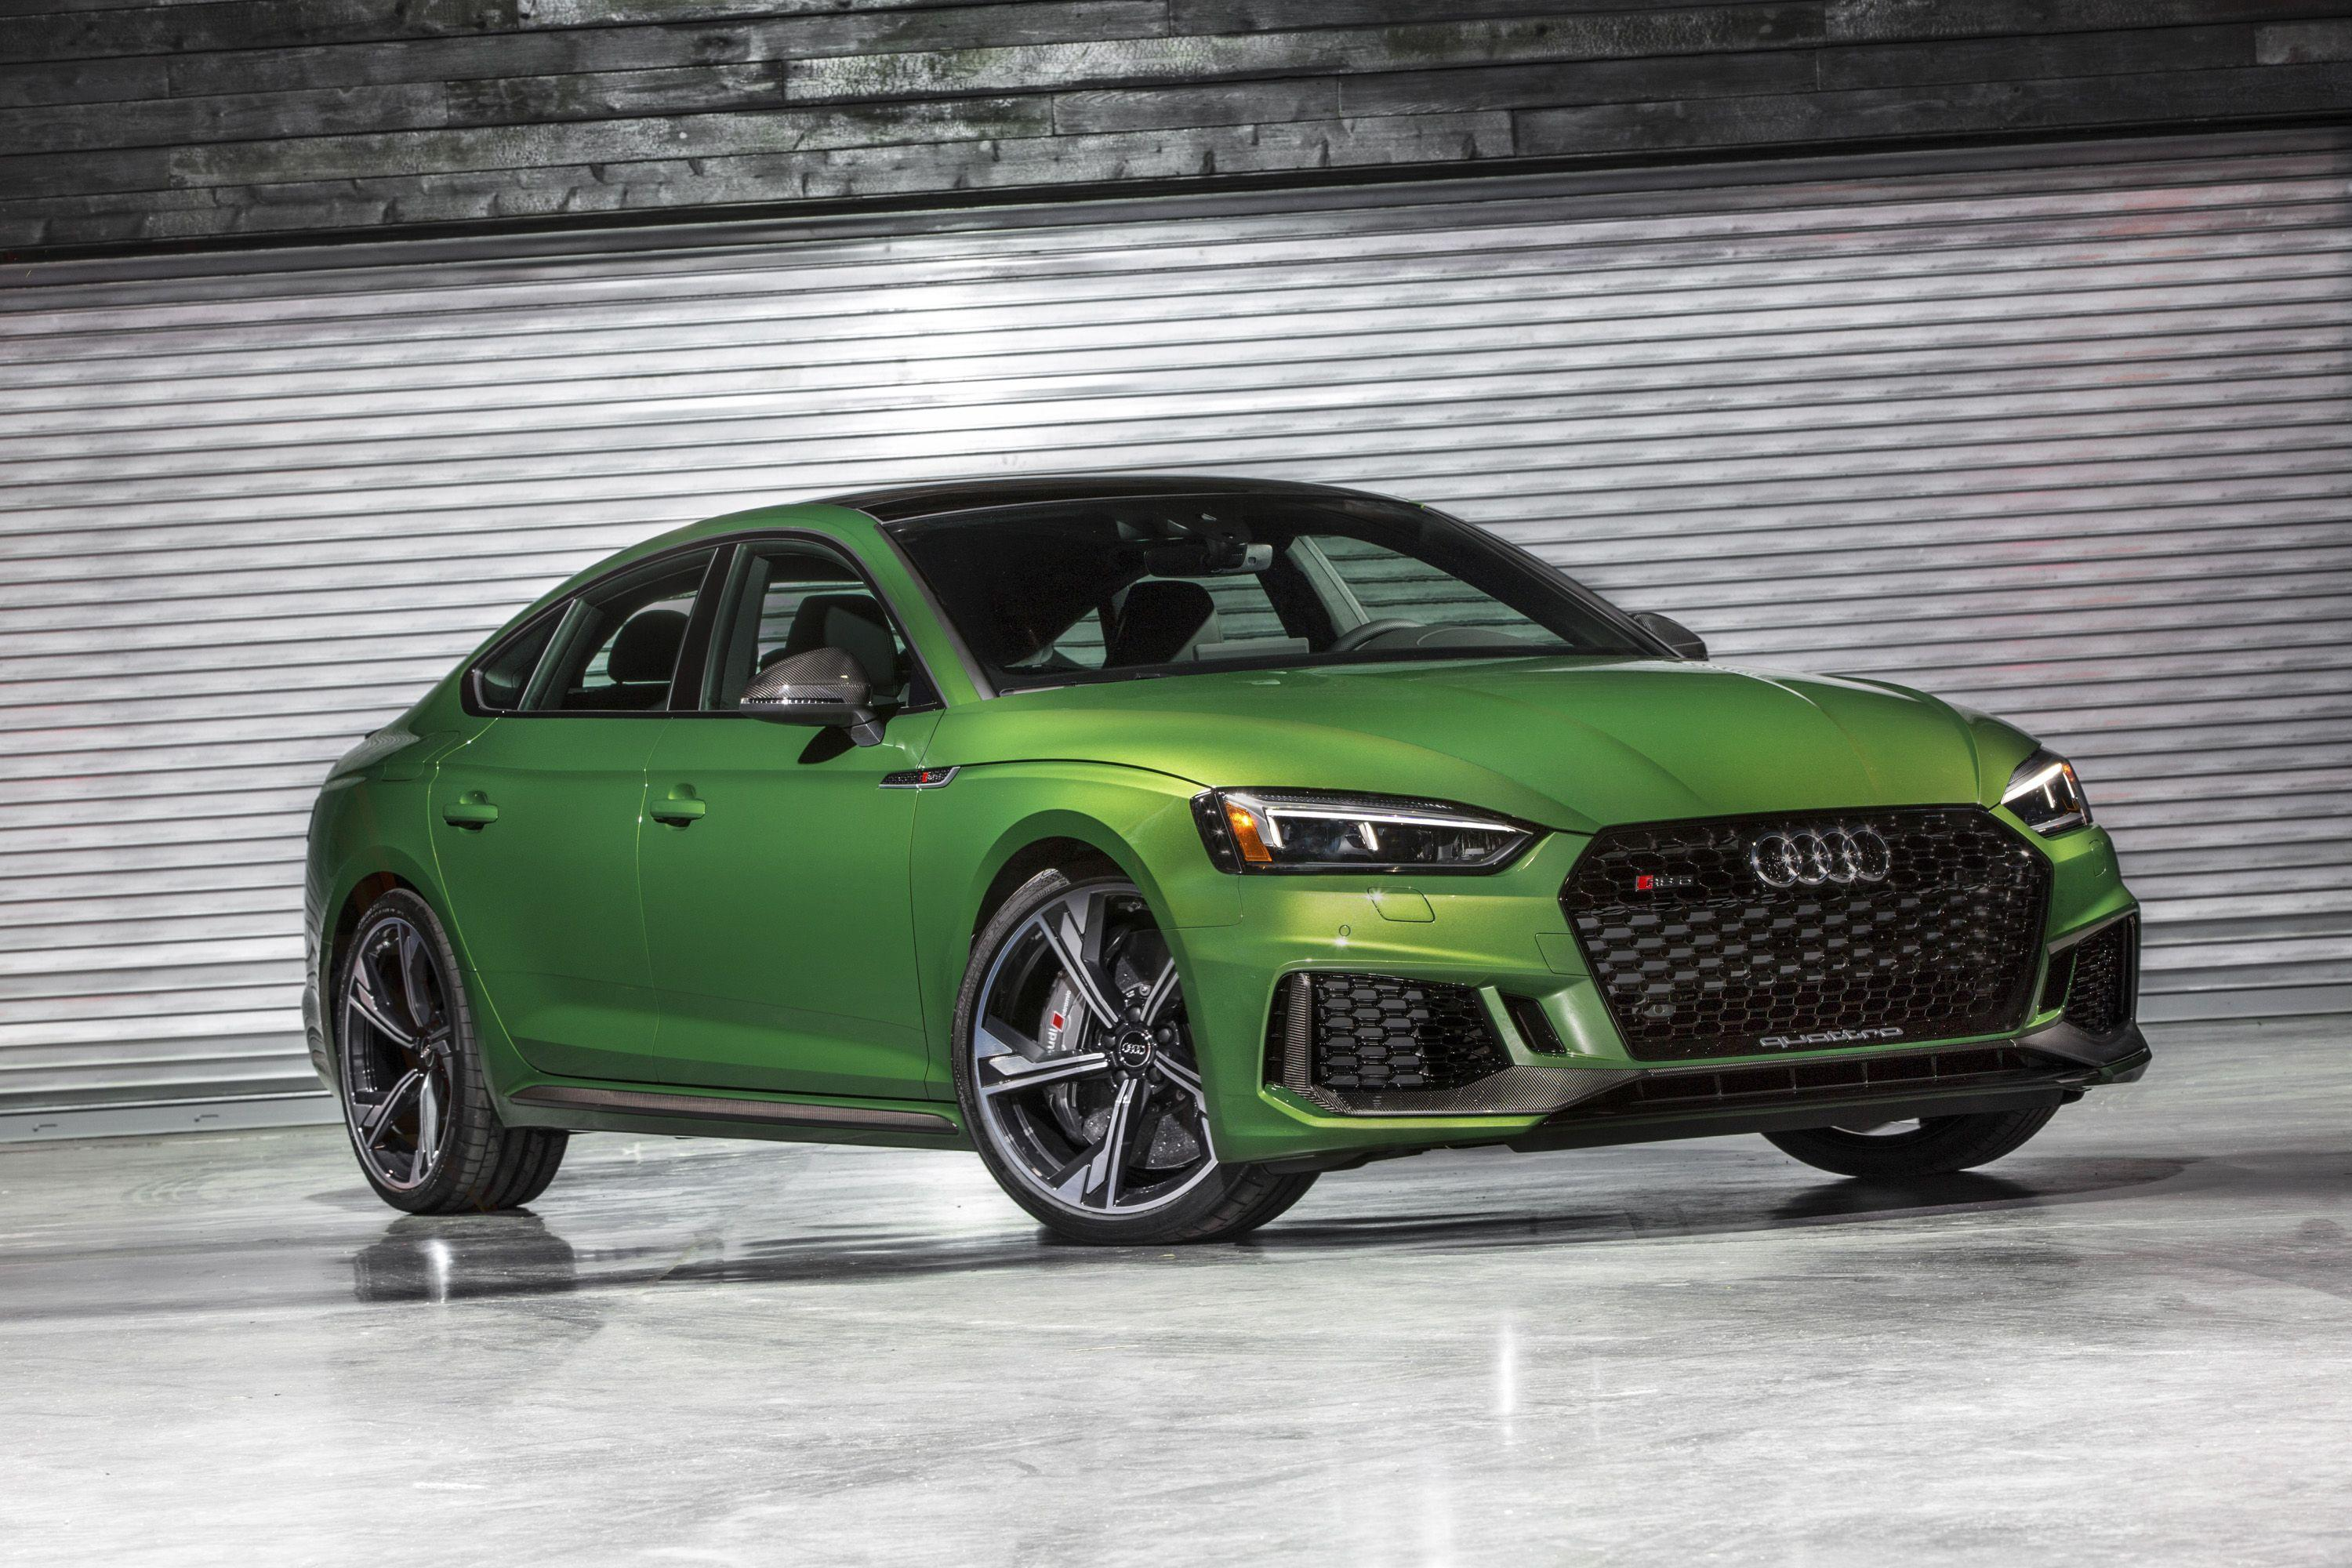 Wallpapers Of The Day: 2019 Audi RS5 Sportback